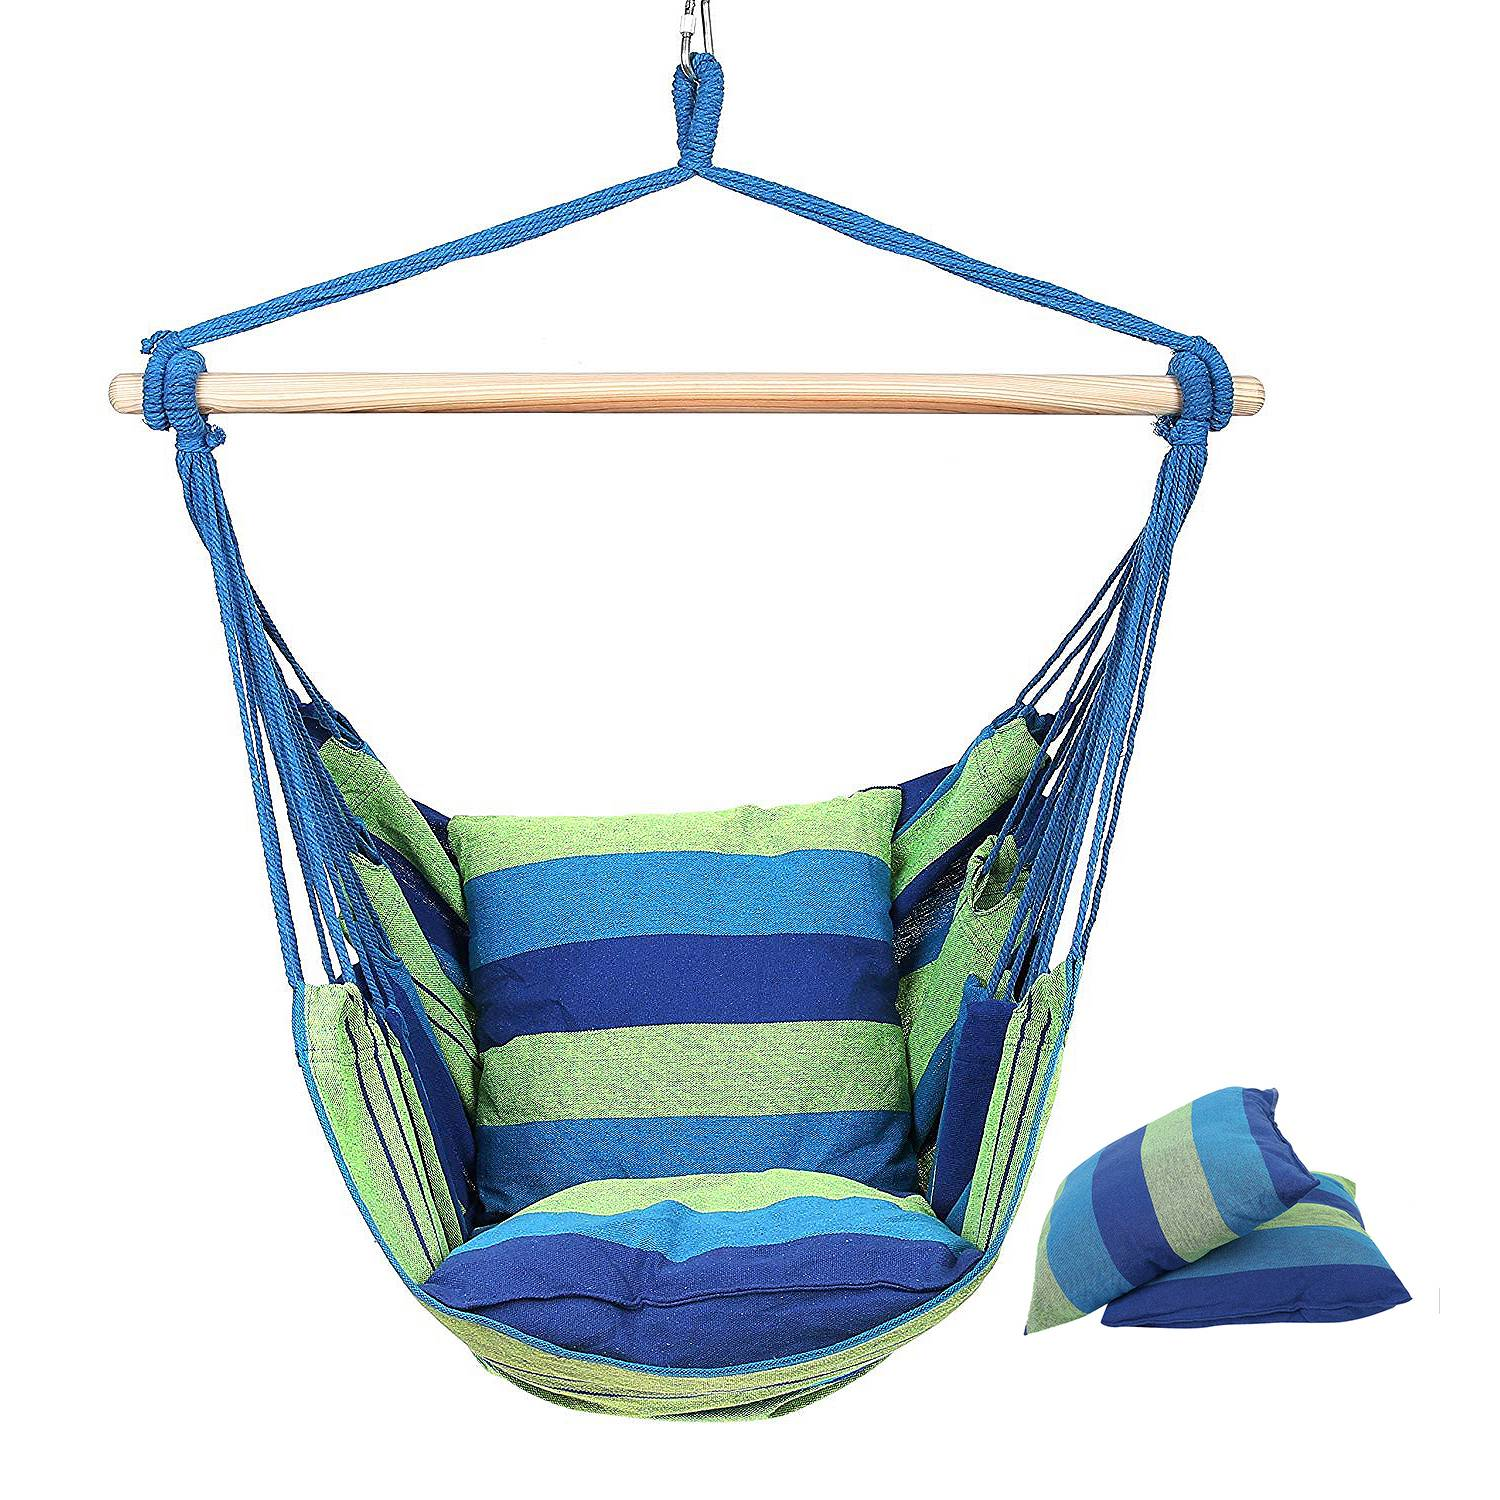 2019  New  Hammock Chair Hanging Chair Swing Chair Seat With 2 Pillows For Indoor,Outdoor,Garden